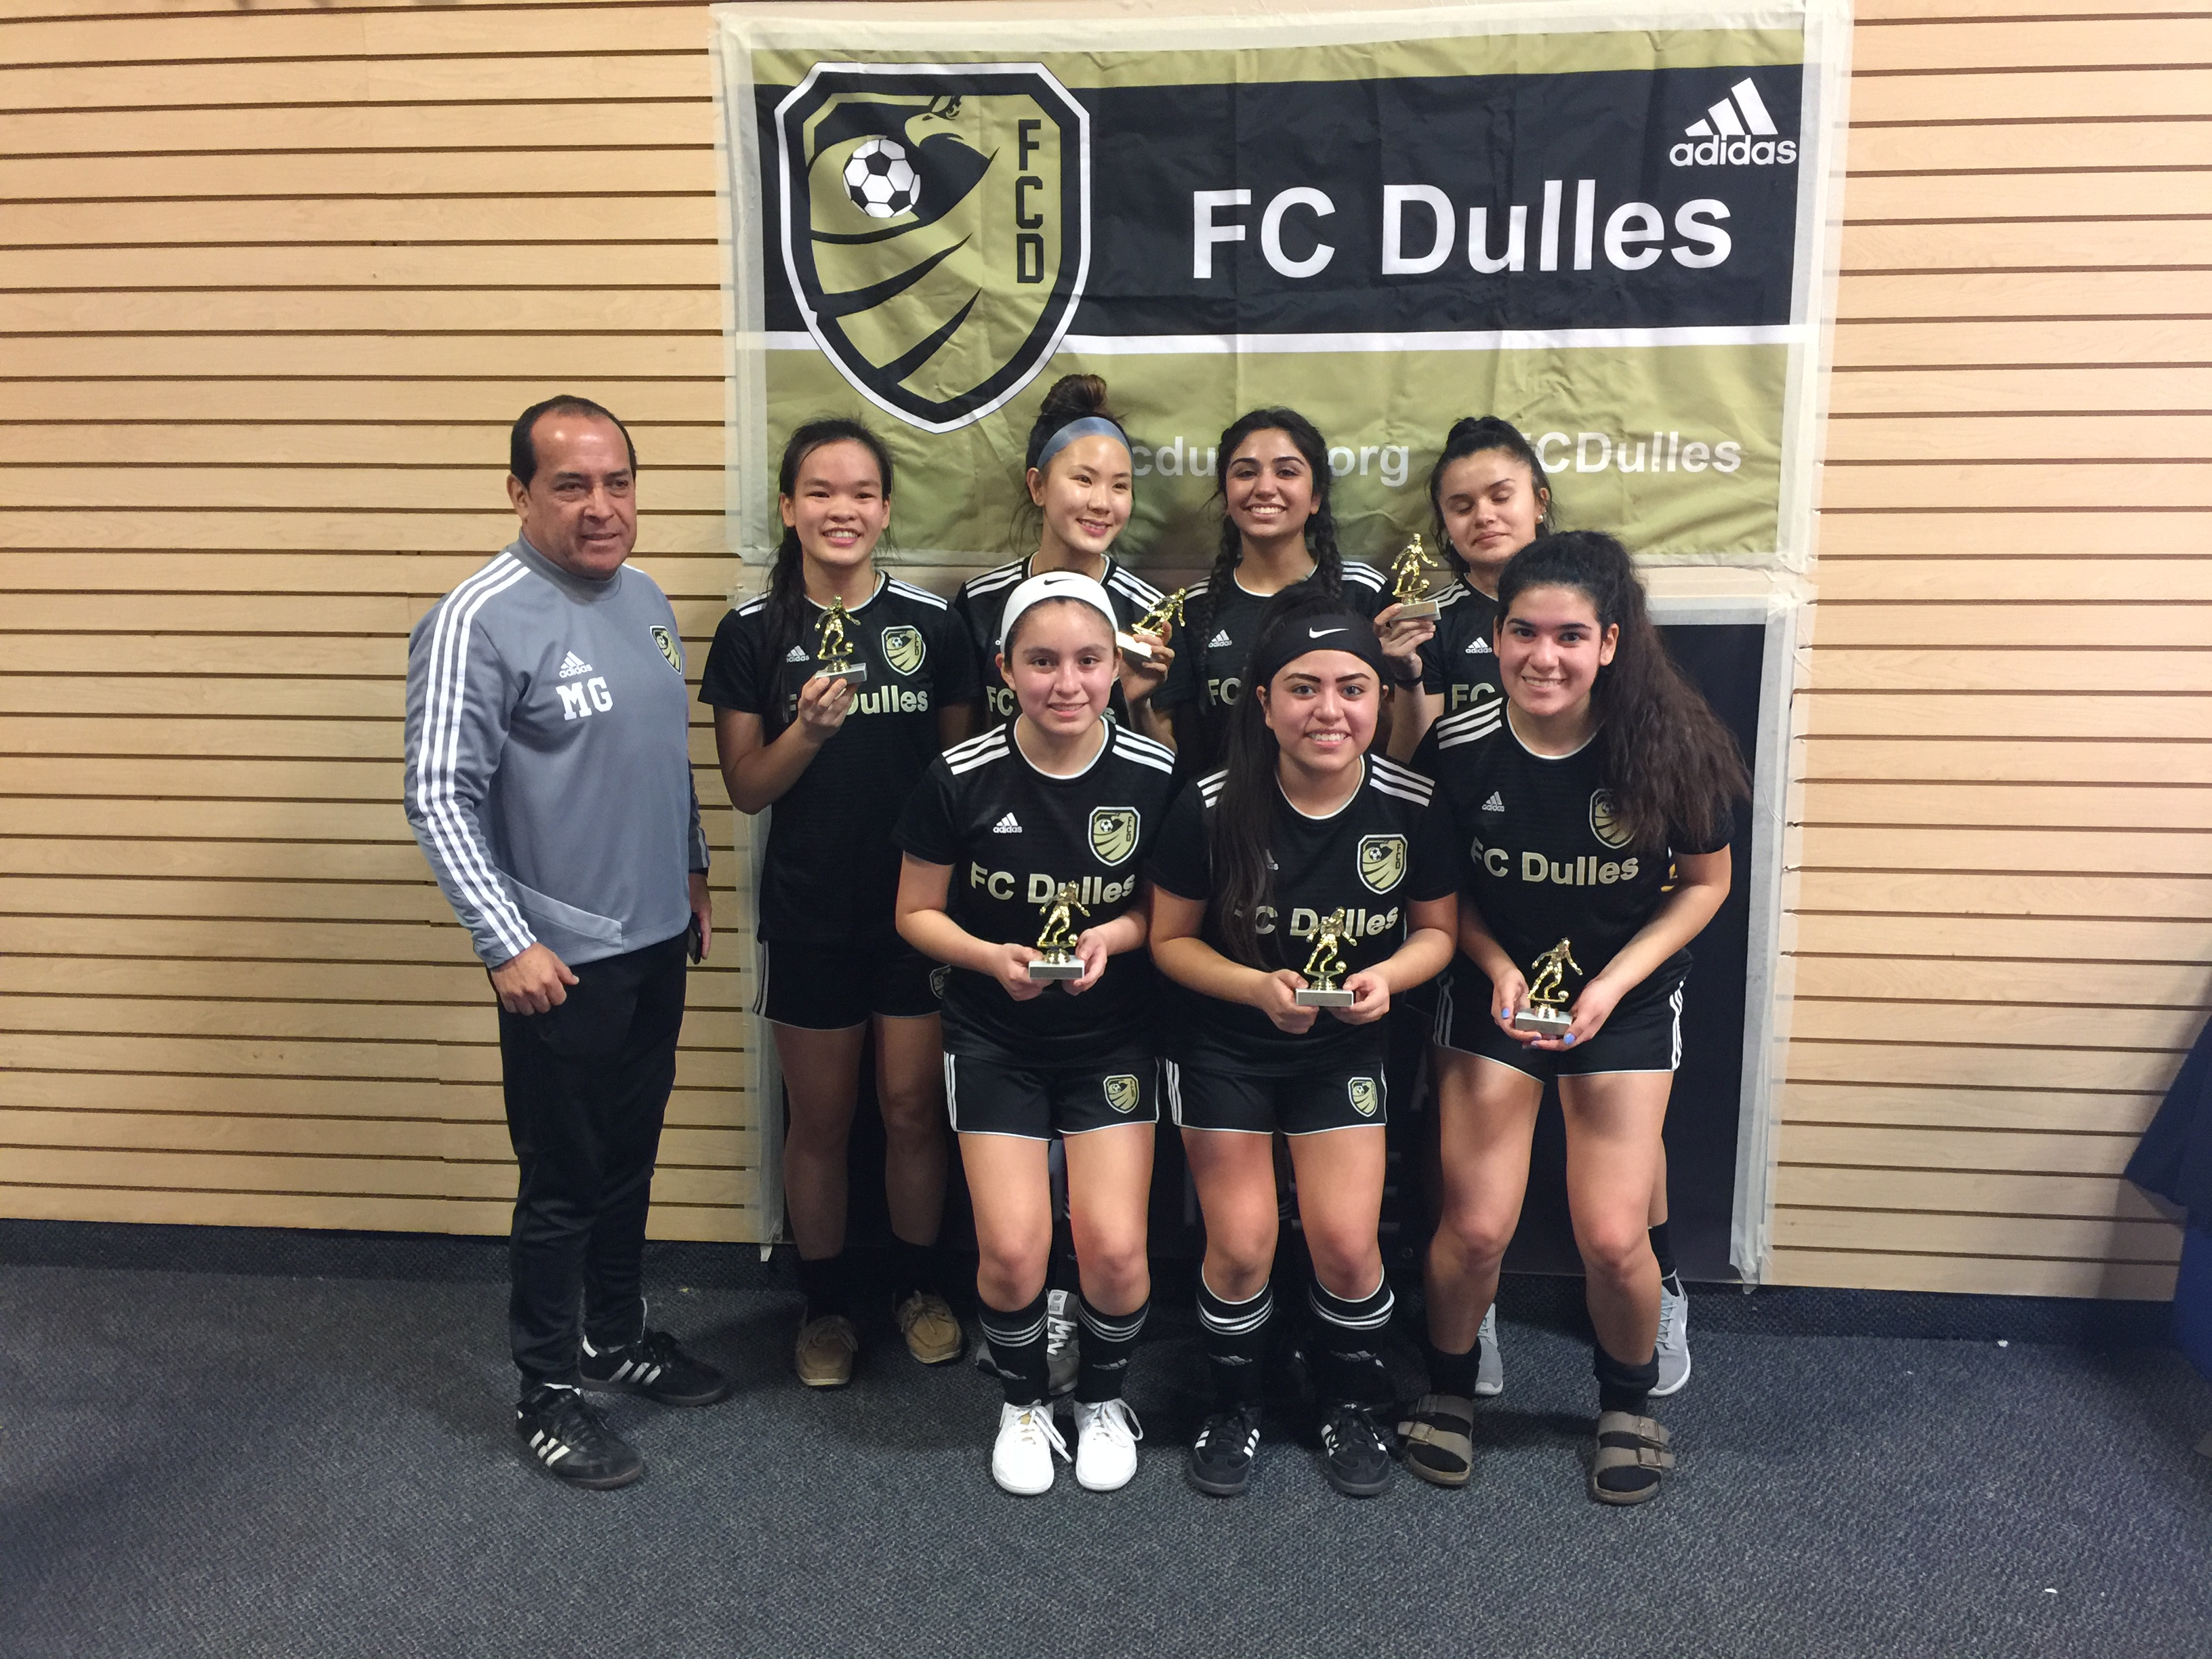 FC Dulles Winter 2018-19 Futsal League Champions Crowned!